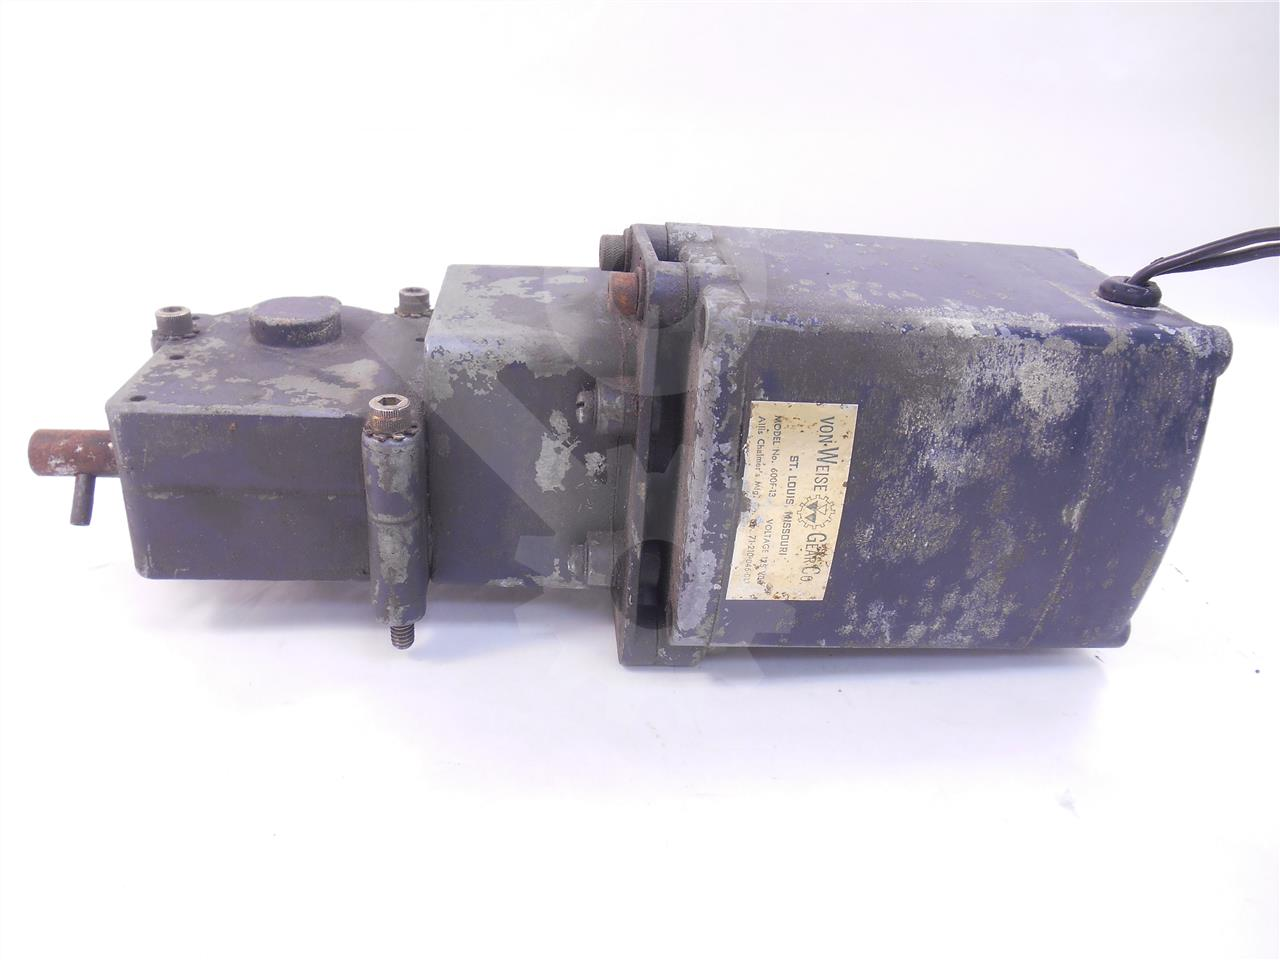 Siemens allis chalmers sa 125vac dc charge motor for Allis chalmers electric motor